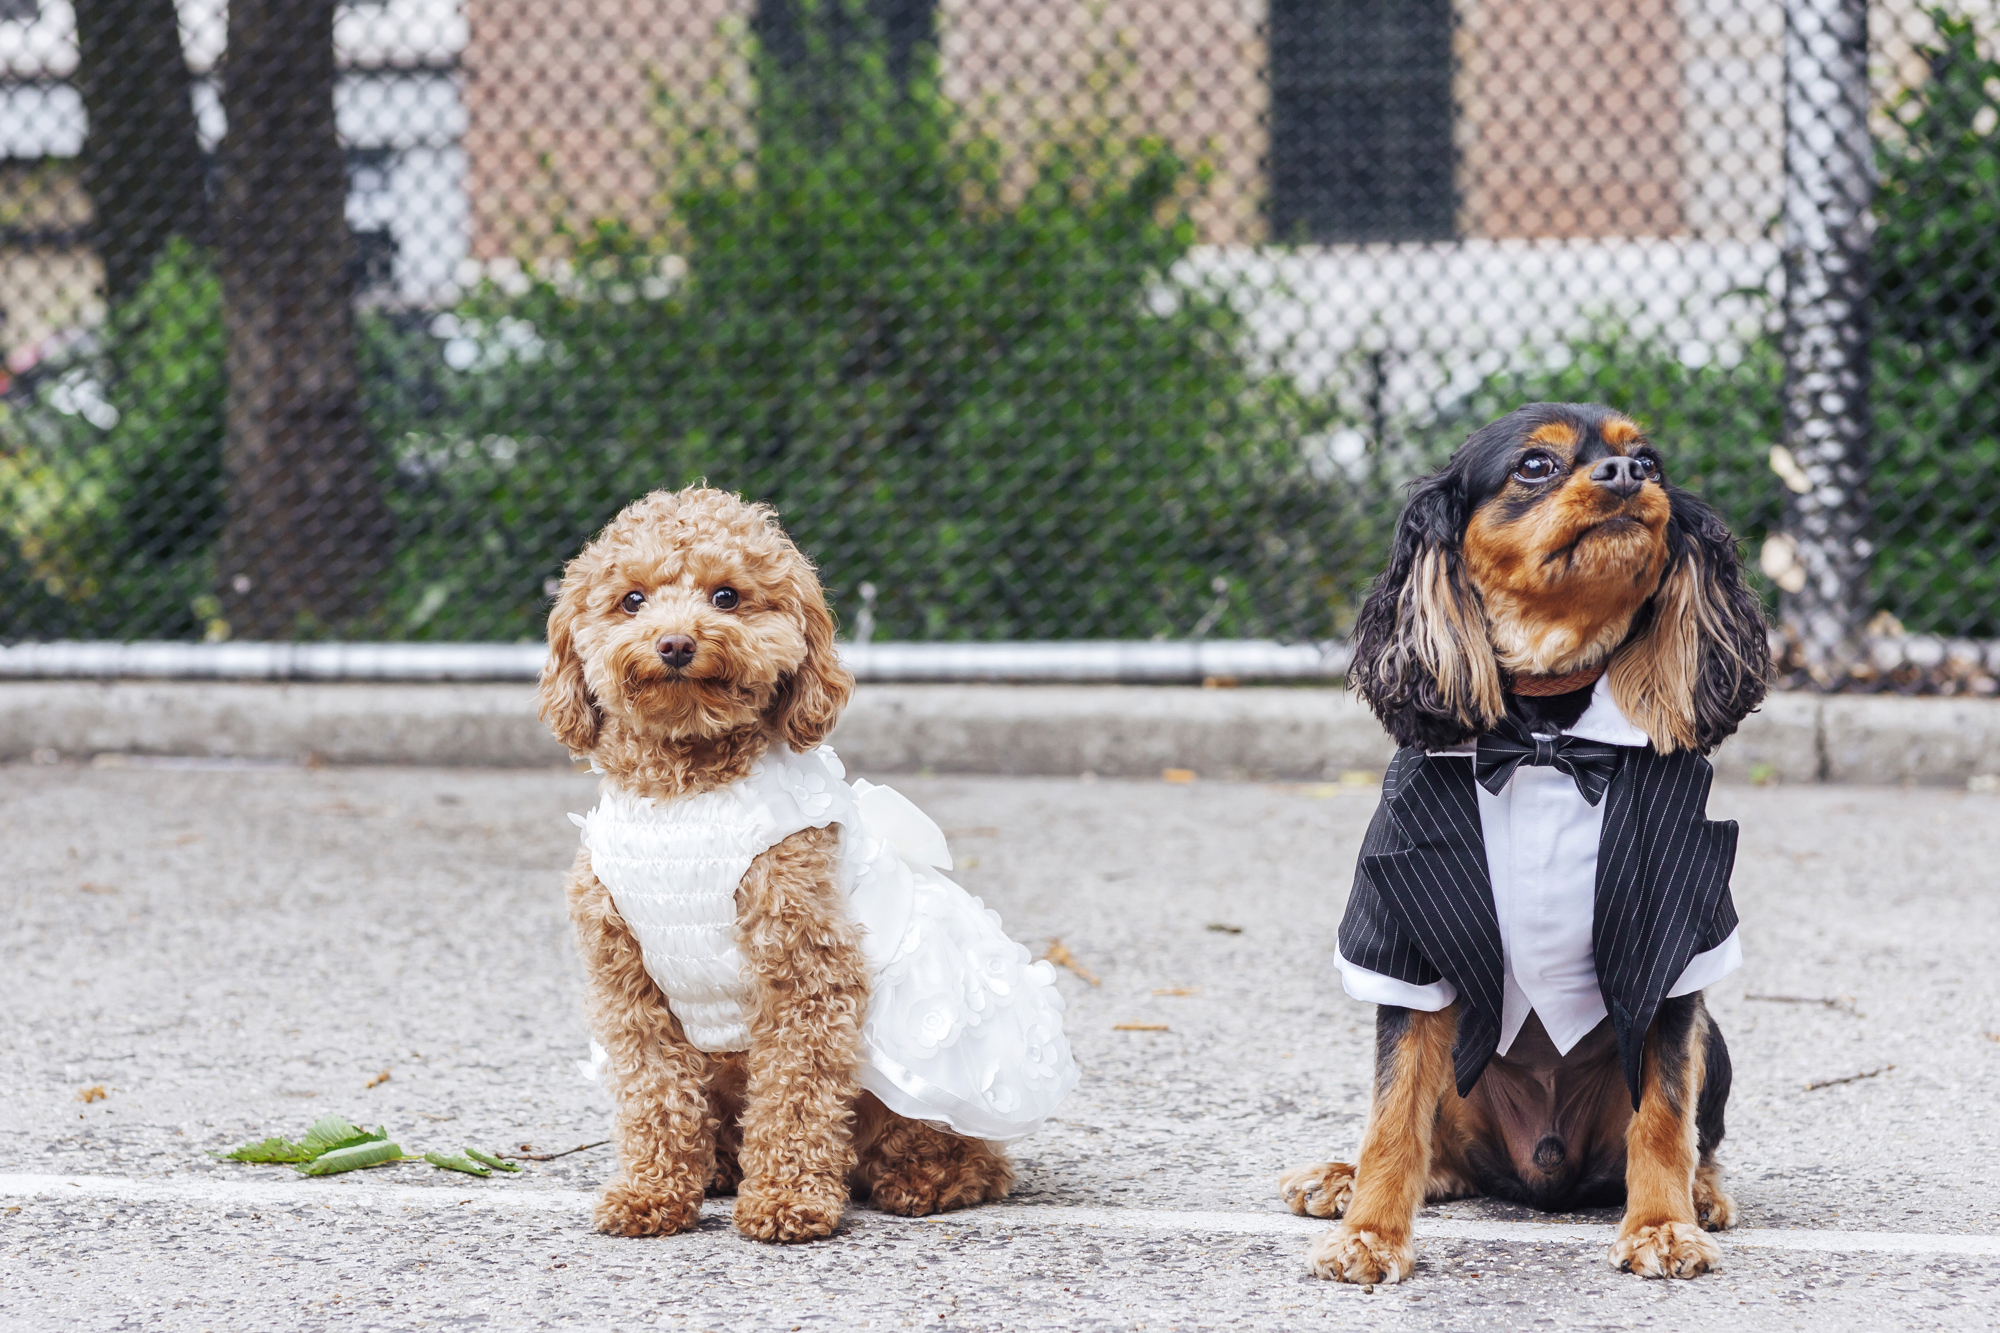 Wedding Dresses for Dogs – Fashion dresses